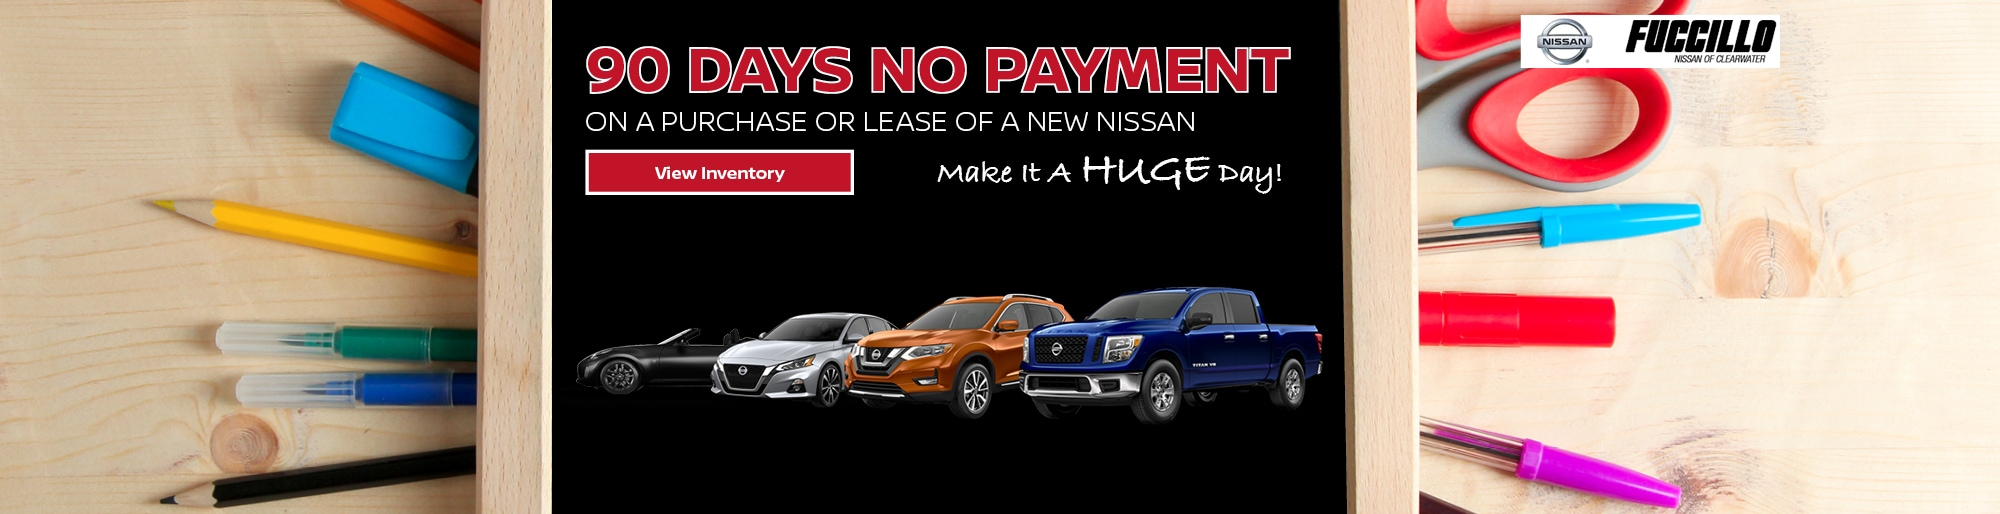 Fuccillo Nissan of Clearwater | Nissan Dealership in Clearwater, FL